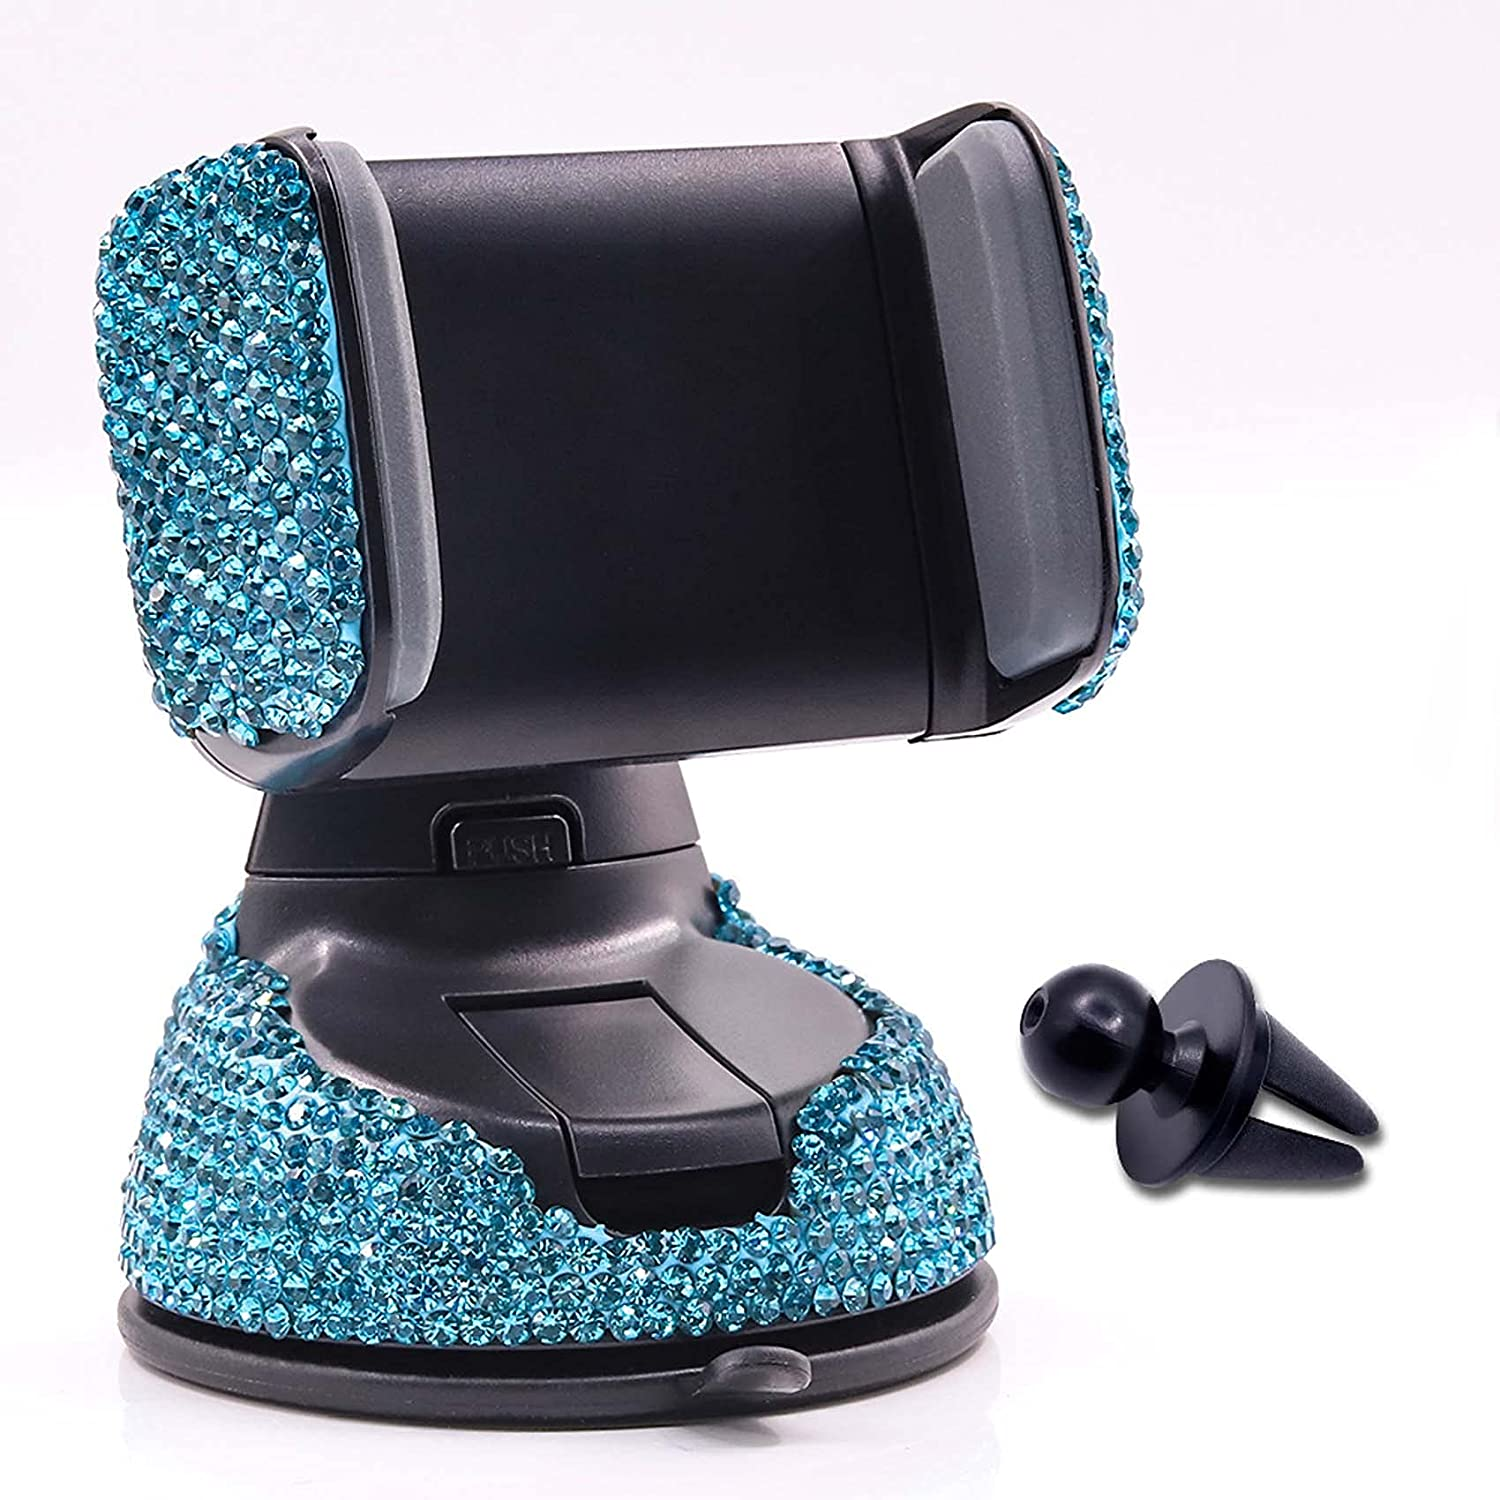 Bling Rhinestone Car Phone Holder Windshield Dashboard Mount Adjustable Phone Holder for Easy View GPS Screen Compatible with iPhone 5 6s 7 8s 9 10 SE XS XR S20 (Lake Blue)